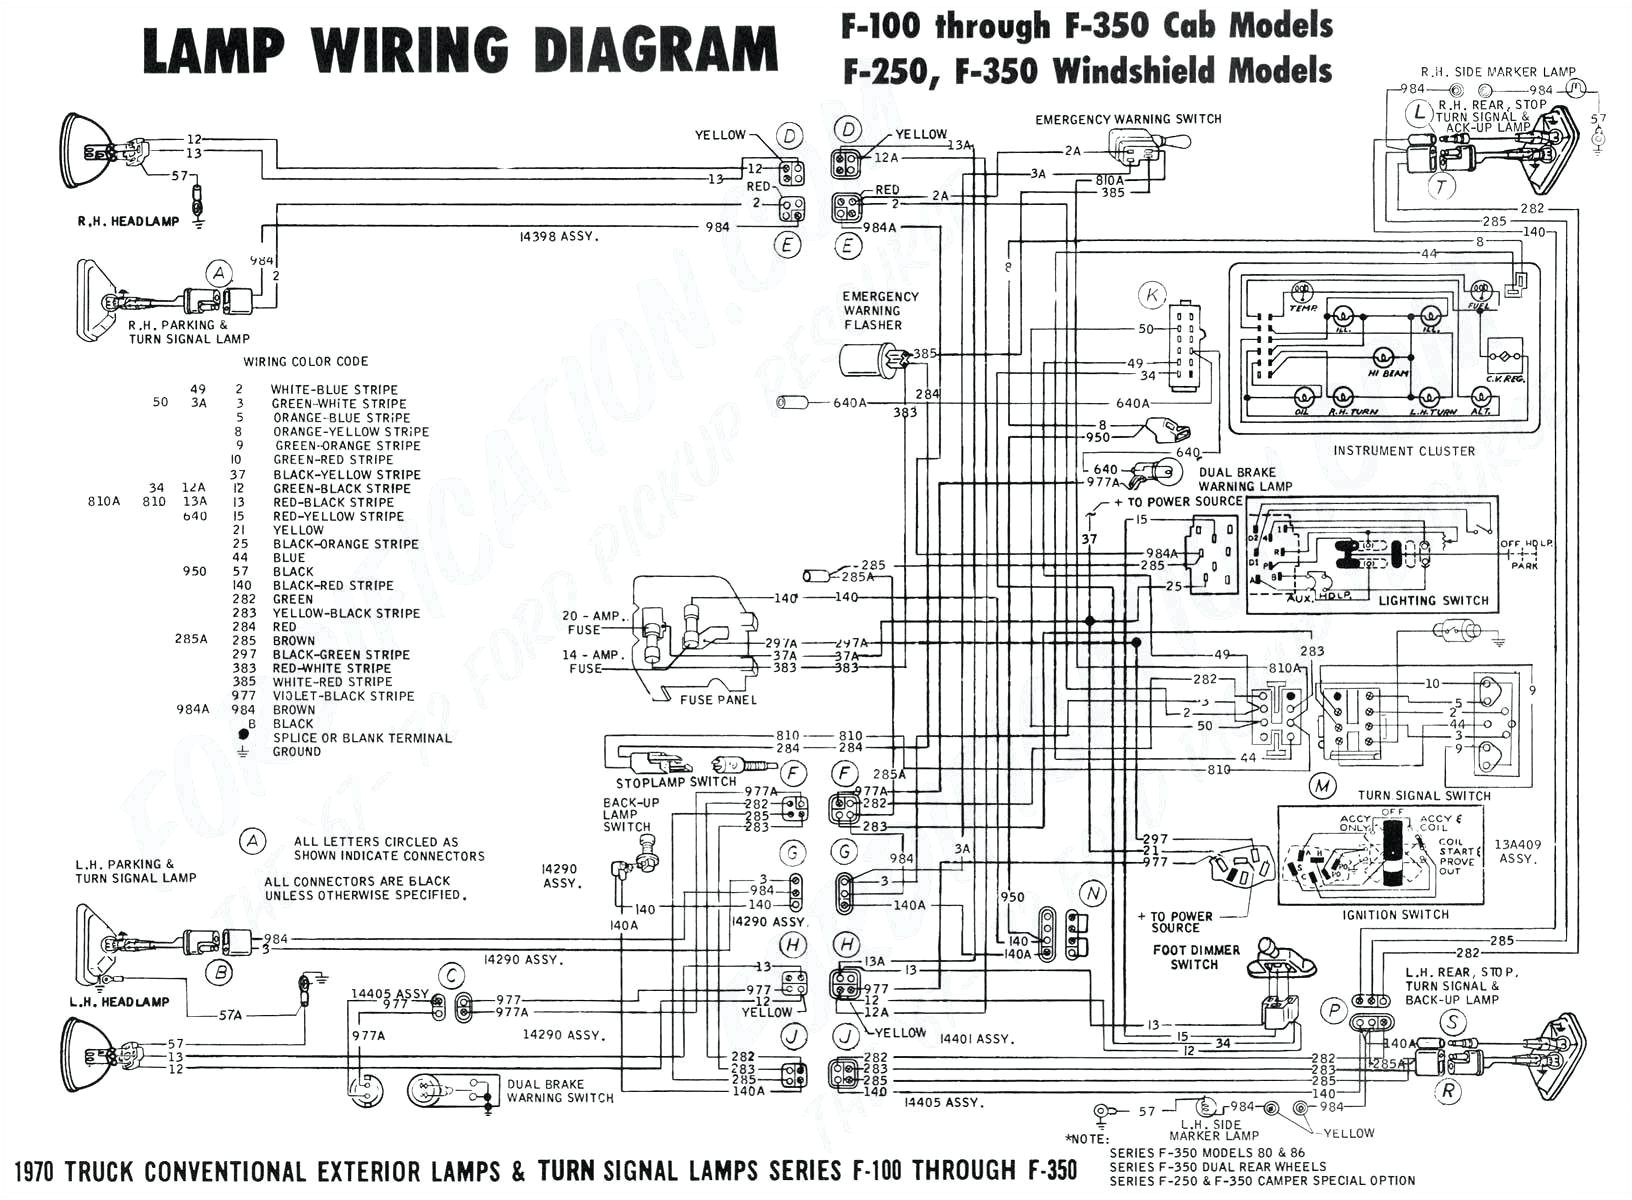 Hopkins 47185 Wiring Diagram 71 ford Ignition Switch Diagram Wiring Diagram List